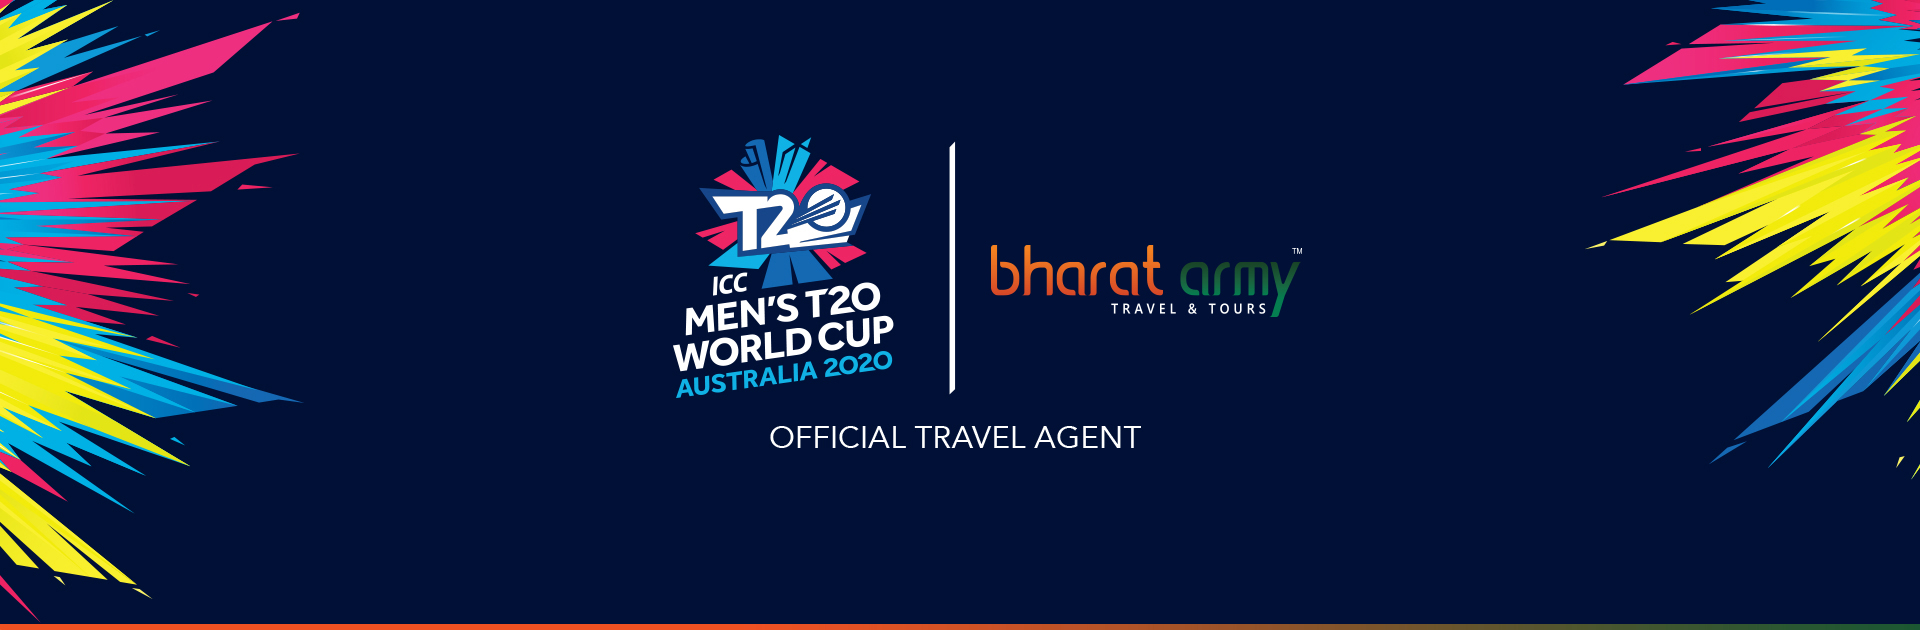 ICC Men's T20 Cricket World Cup 2020 Tickets with Match